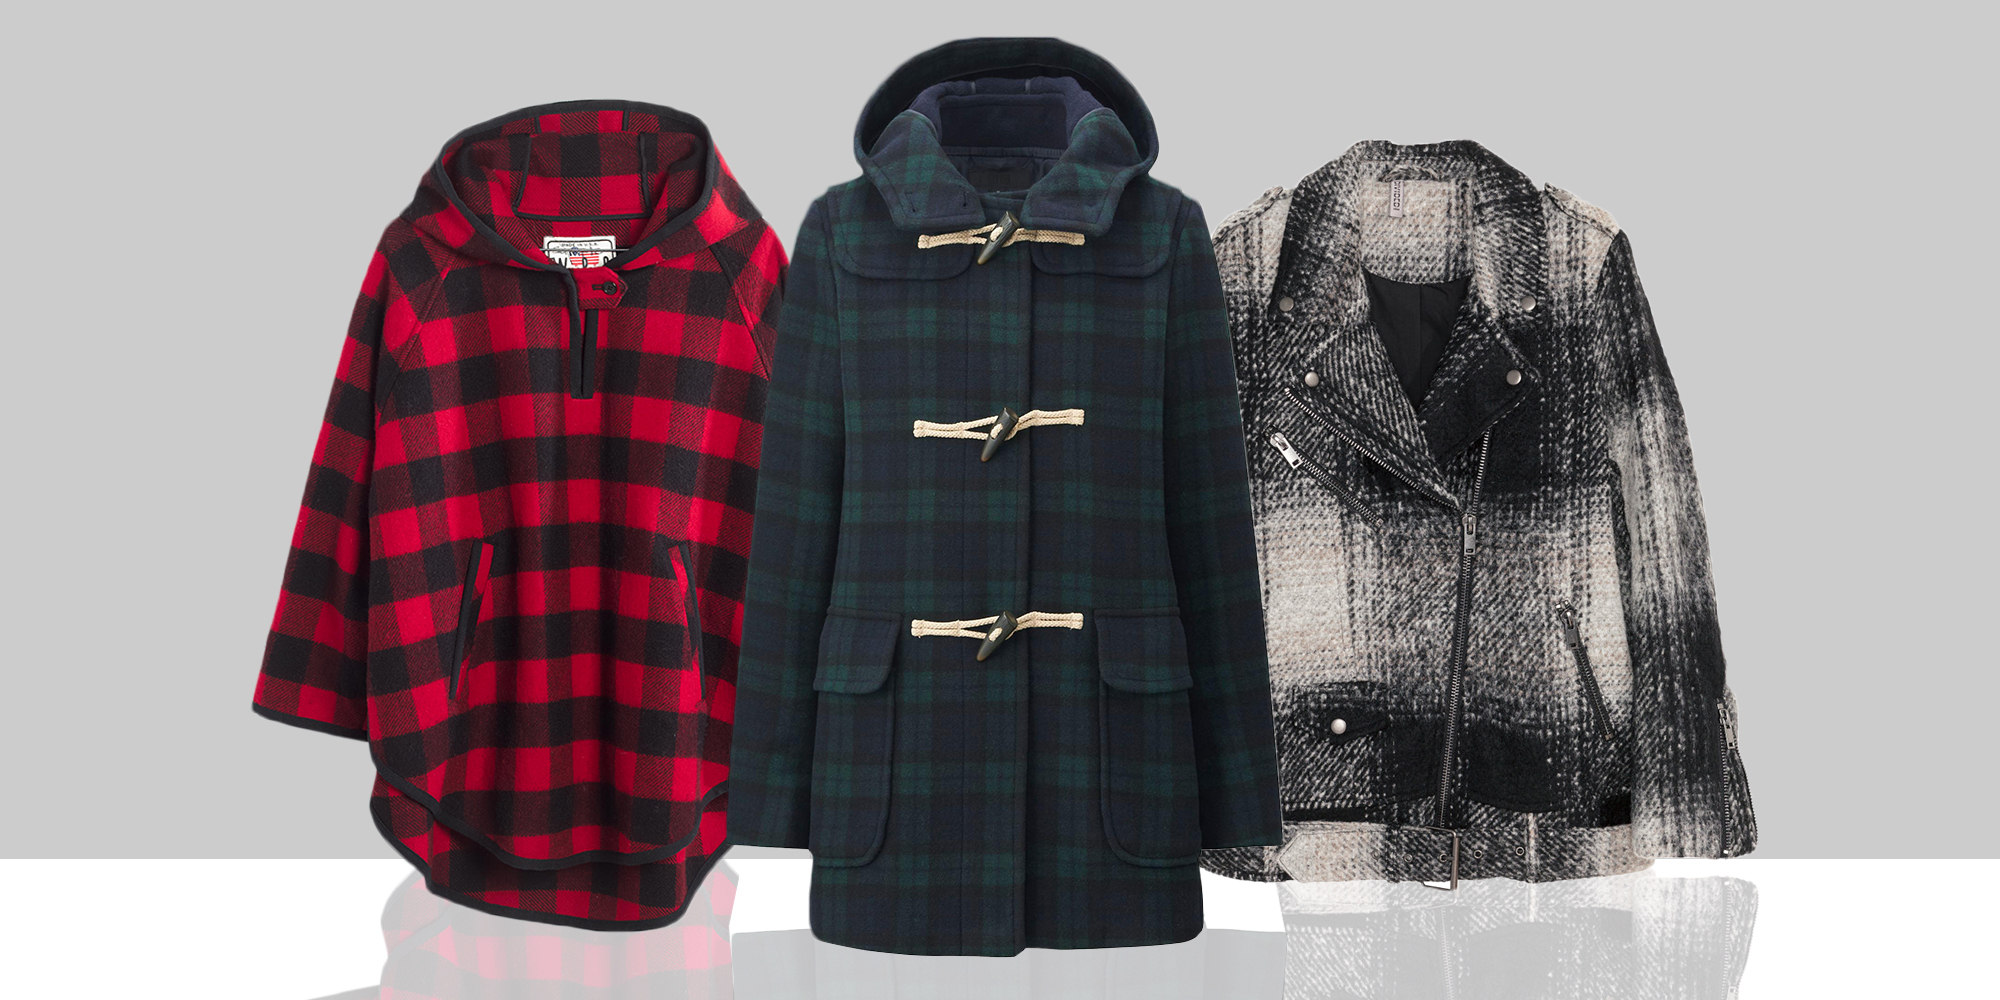 9 Best Plaid Jackets In 2018 Plaid Jackets And Peacoats